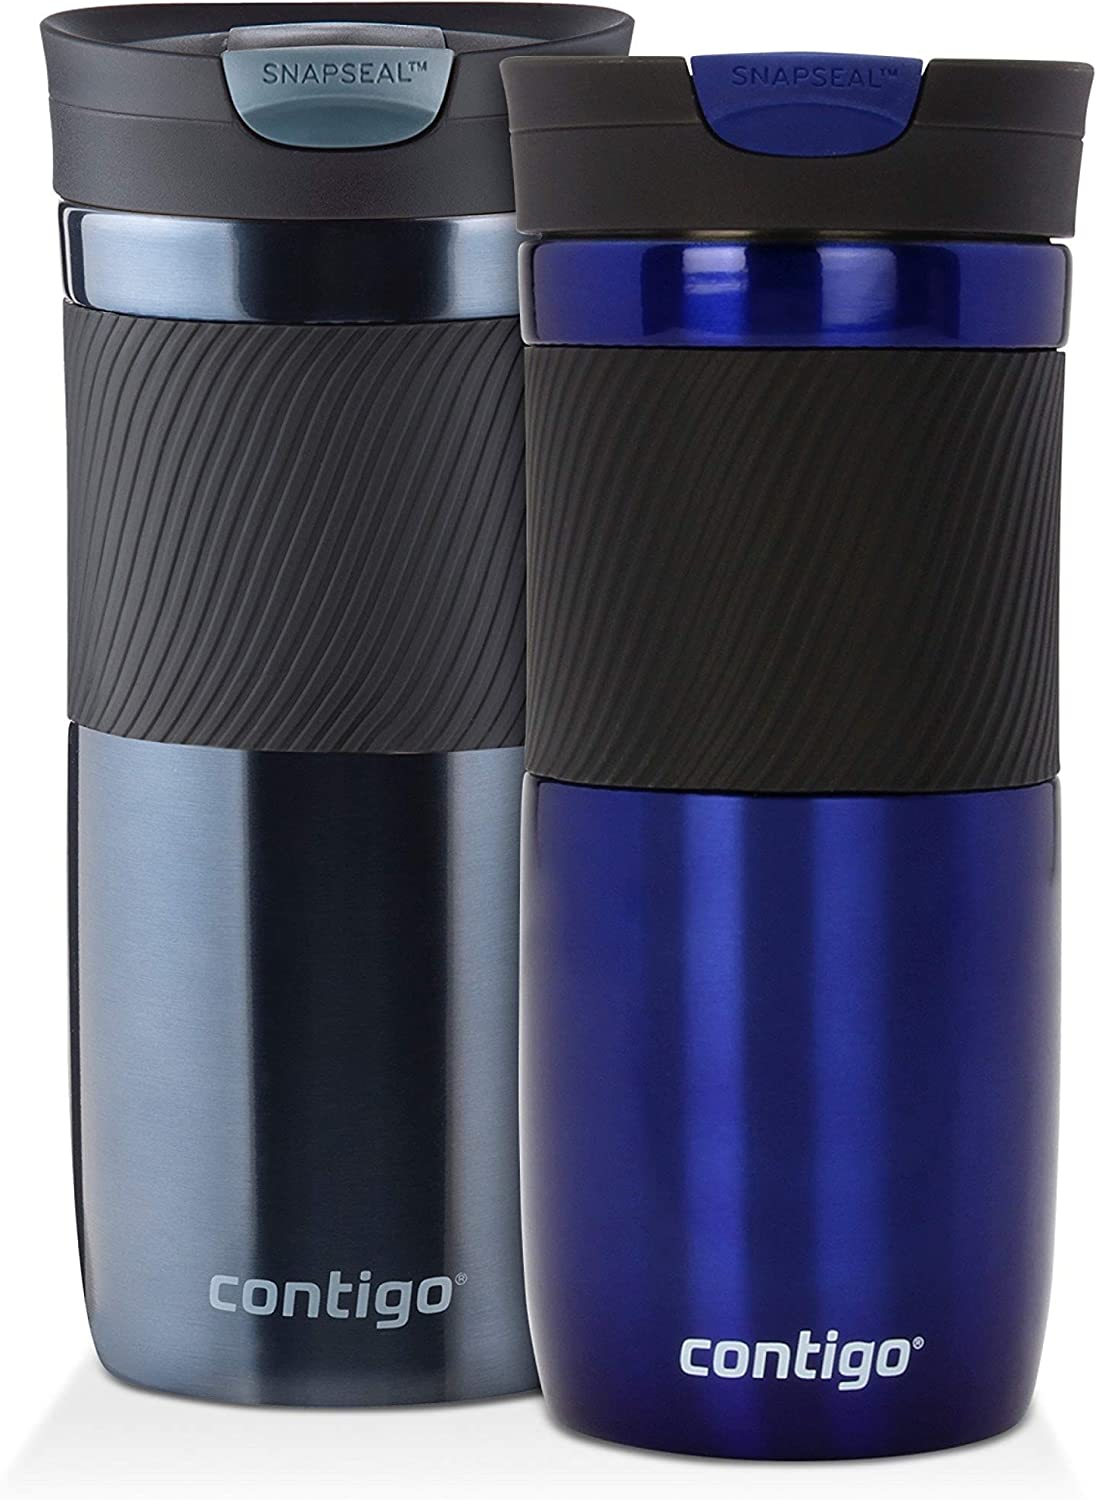 Contigo SnapSeal Byron Vacuum-Insulated Stainless Steel Travel Mug, 16 oz, Deep Sea and Stormy Weather